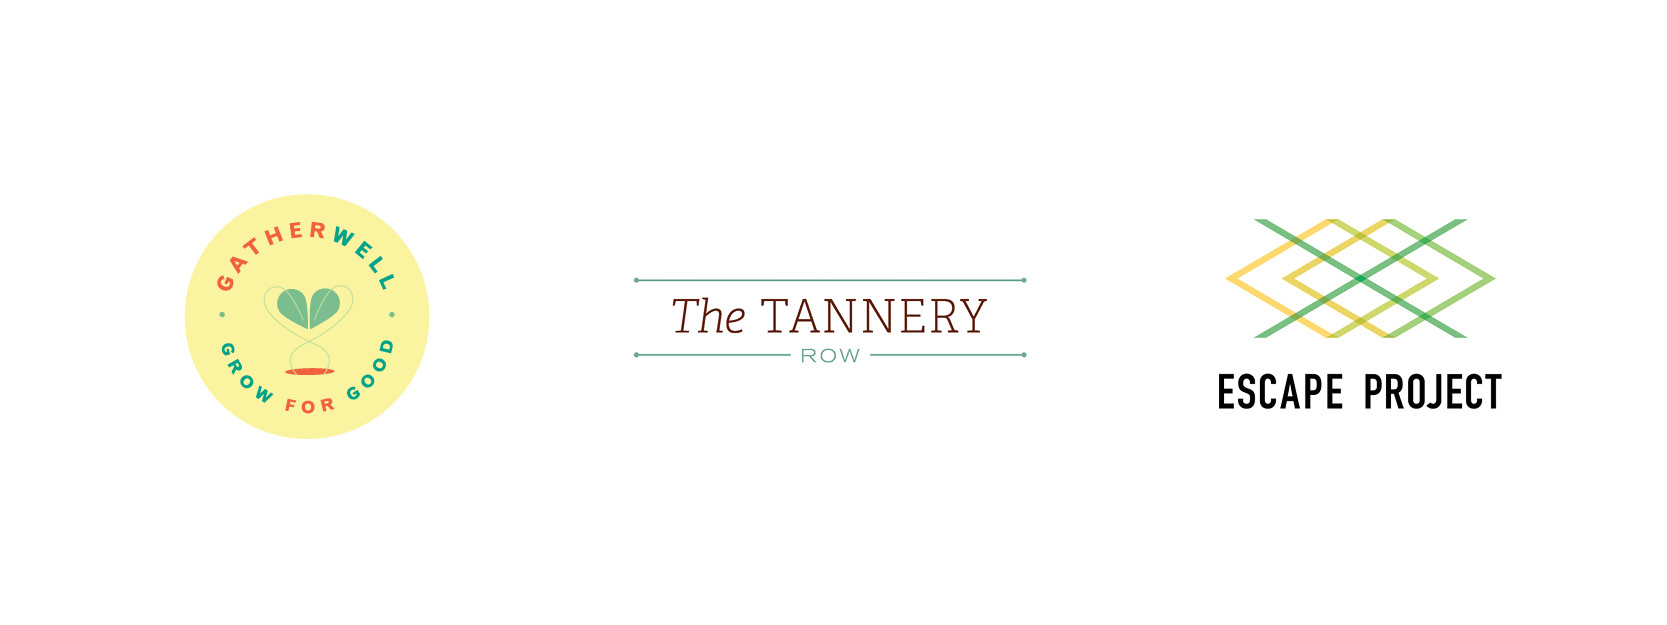 GatherWell concept,  The Tannery Row , Escape Project